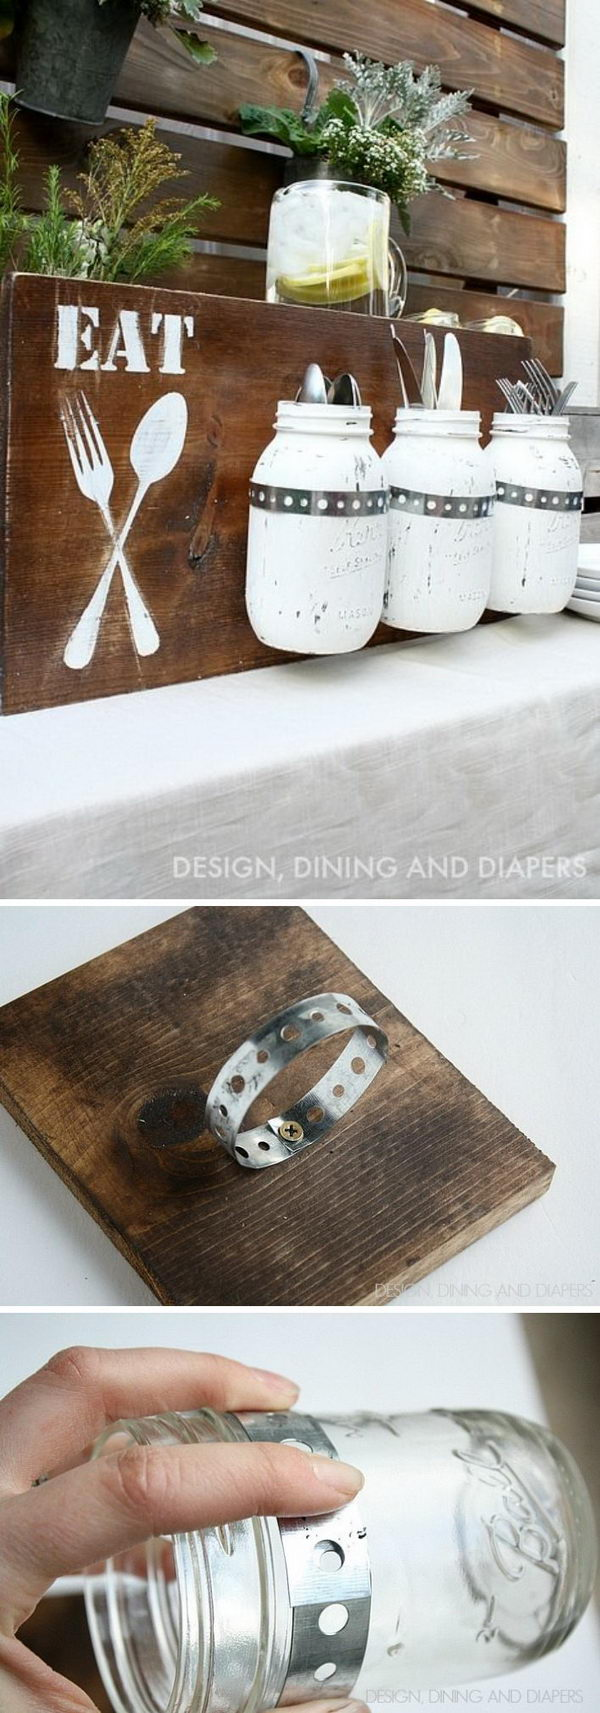 DIY Silverware Holder Using Mason Jar And Wood.